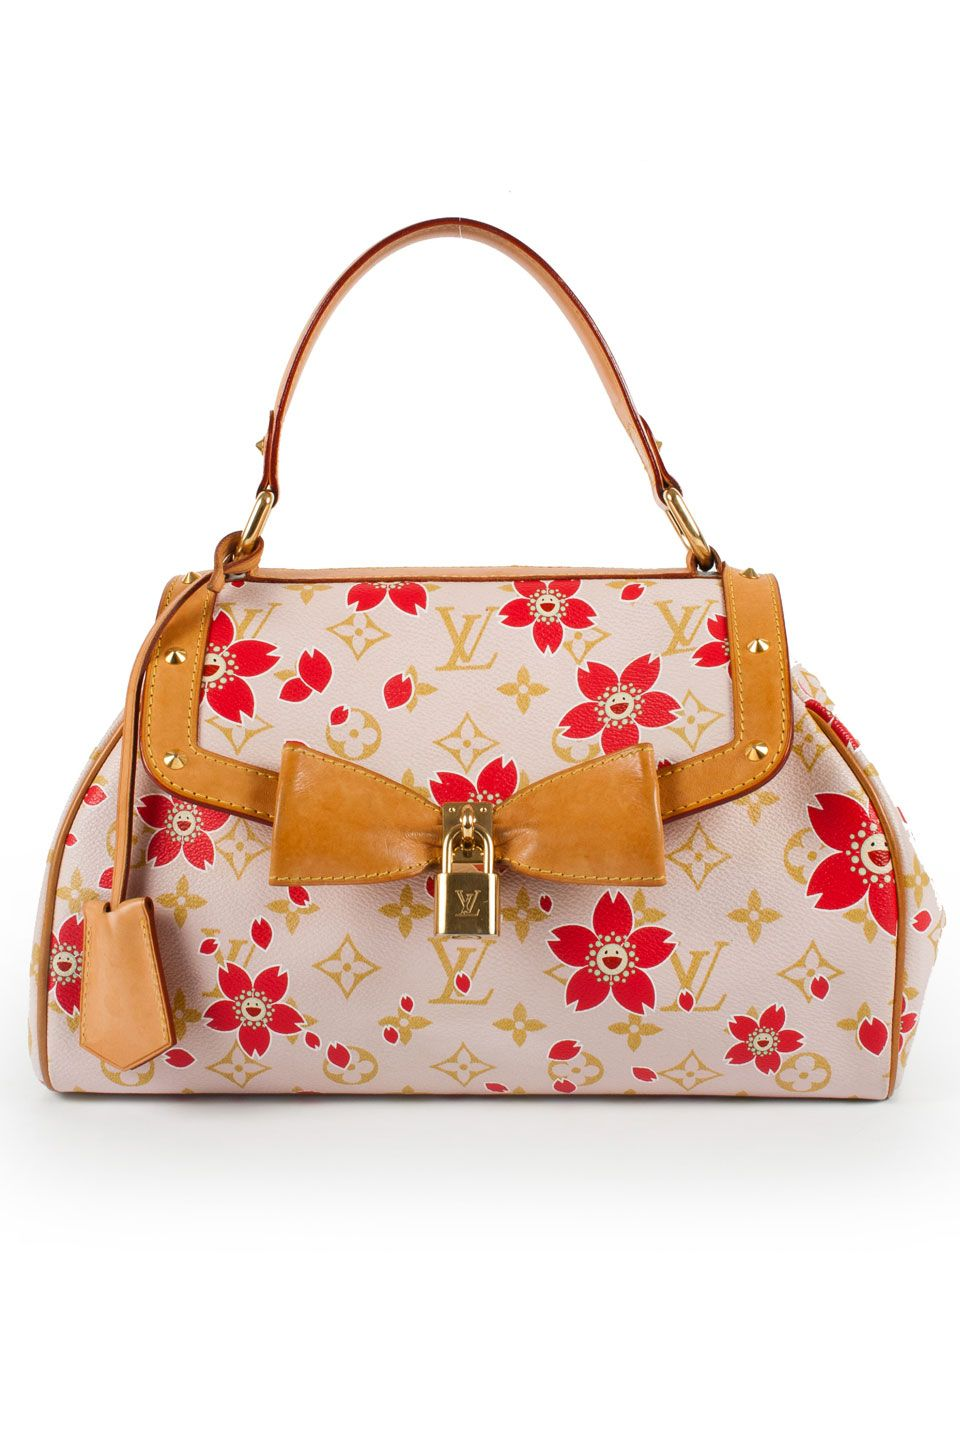 Omg The Flowers Are Smileys Limited Edition Sac Retro In